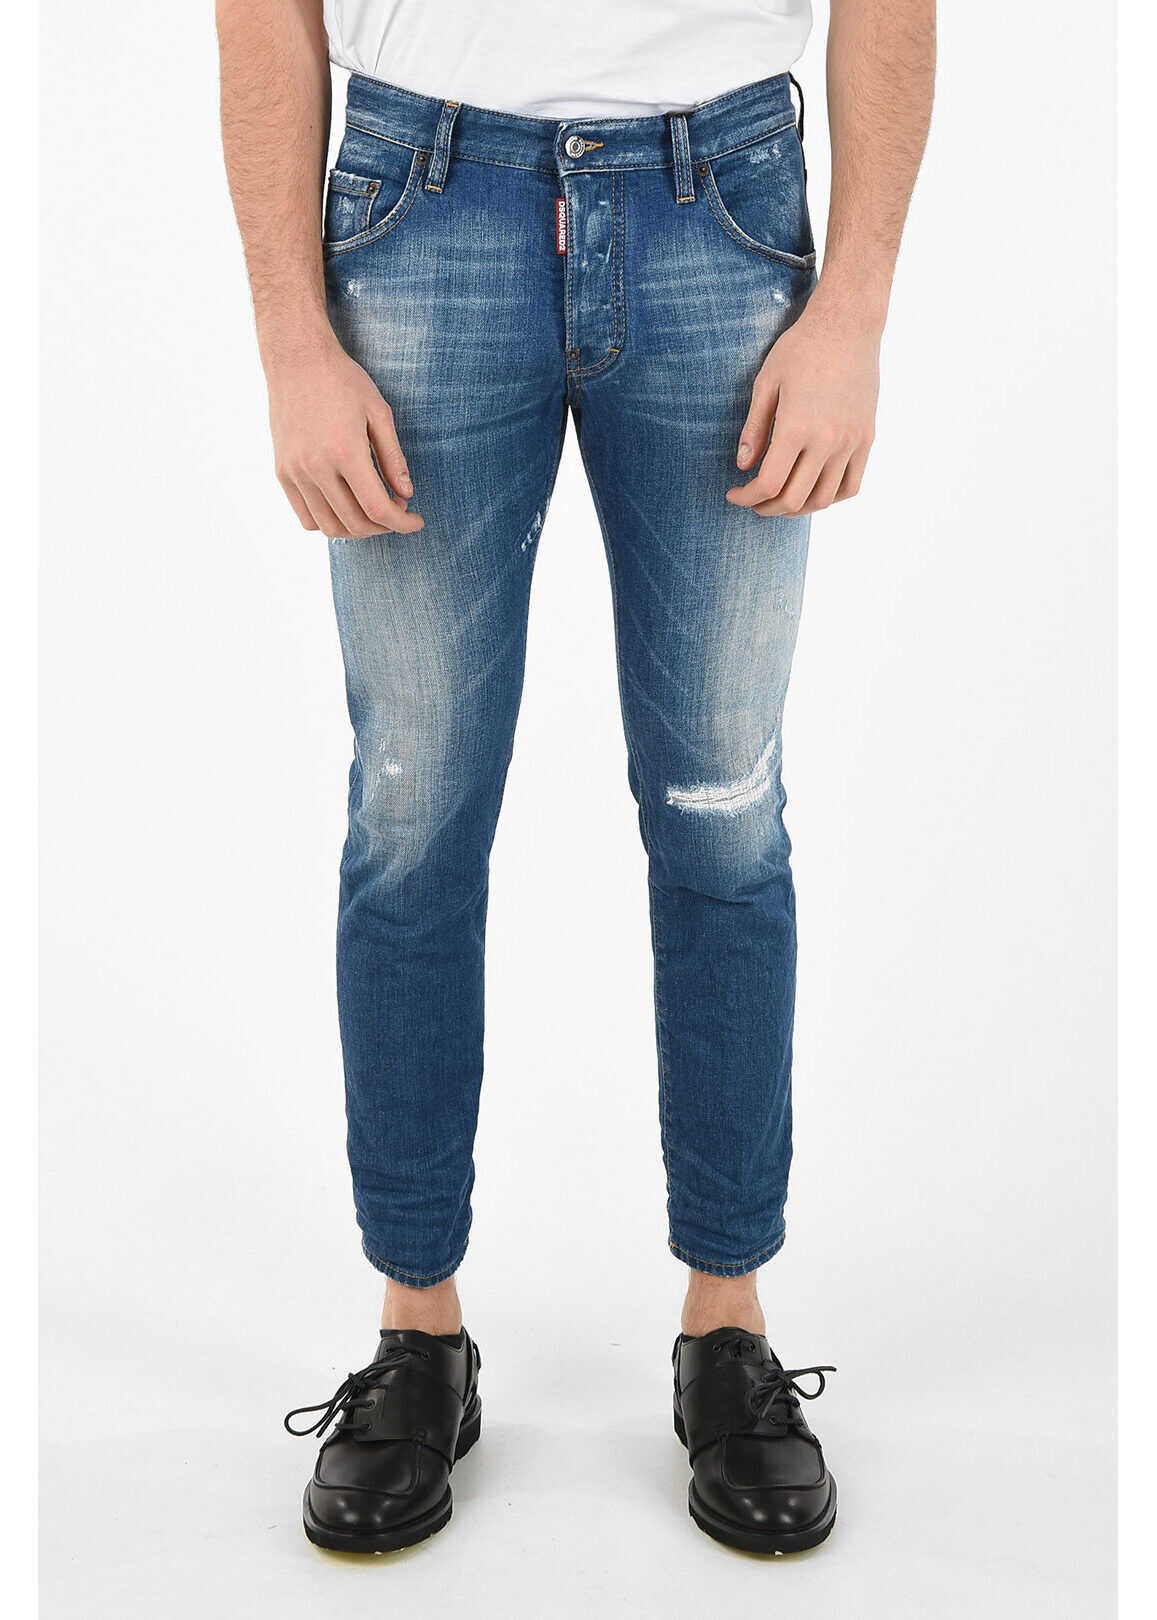 DSQUARED2 16cm Stretch Denim Capri SKATER Jeans BLUE imagine